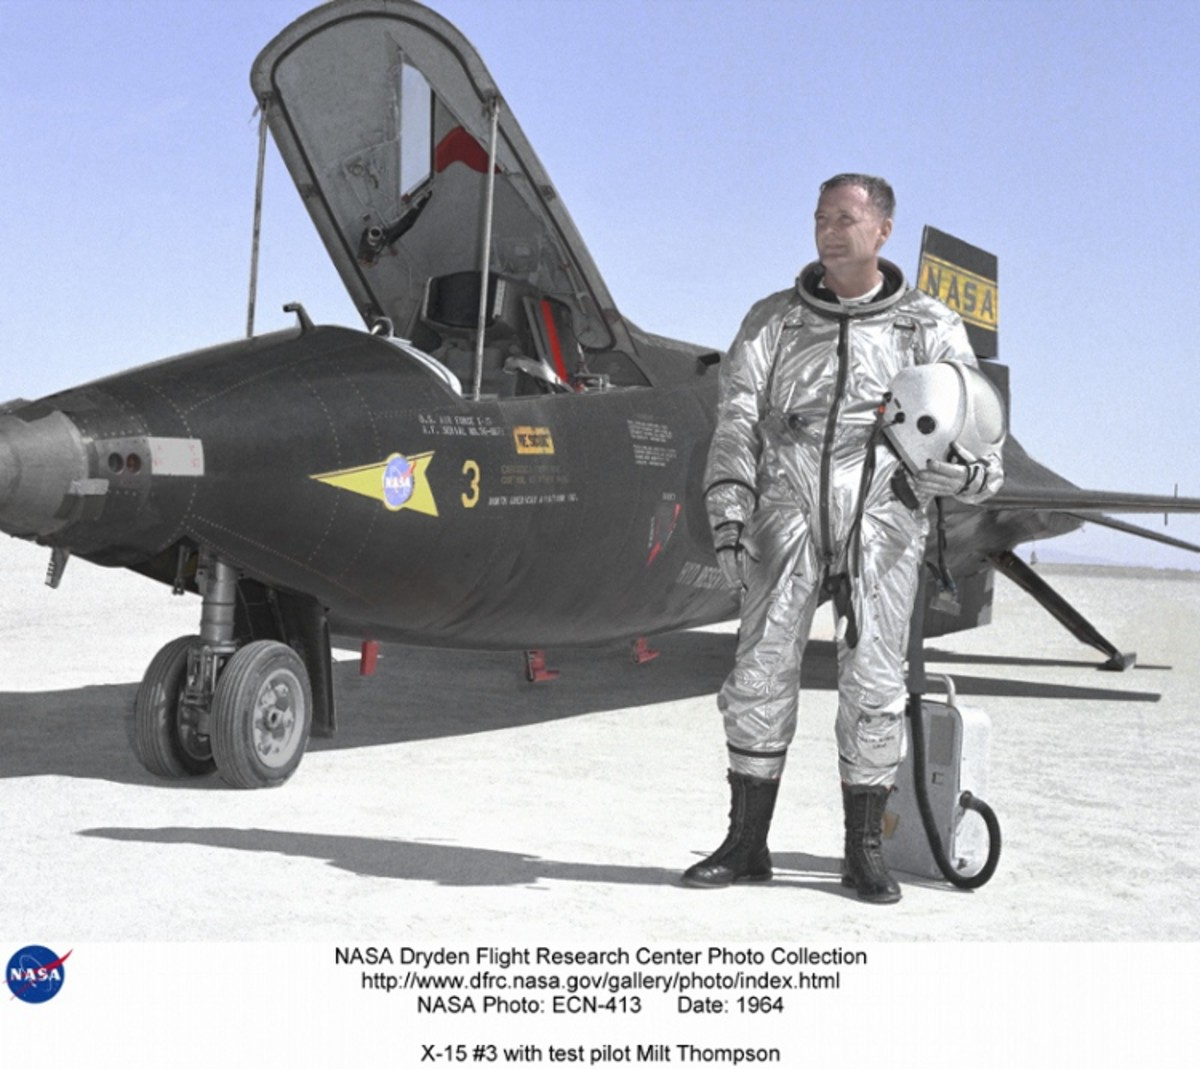 The X-15 rocket plane was an experimental aircraft flown in the 1950s and 1960s. Technology used in this pressure suit was adapted for the Gemini space suit. Photo courtesy of NASA.